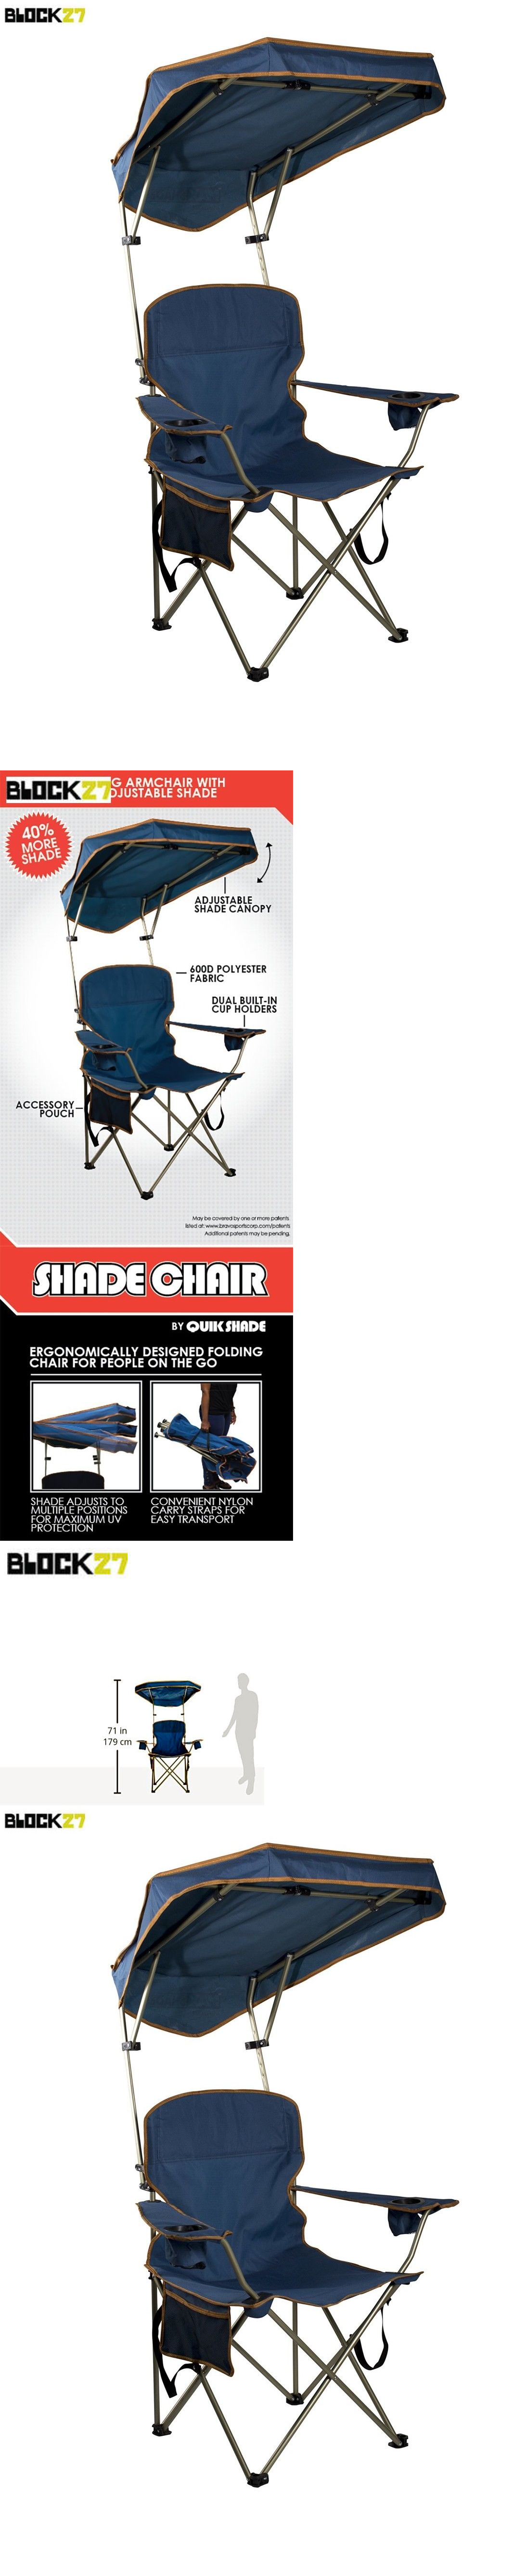 Camping Furniture 16038 Folding Portable Chair With Sun